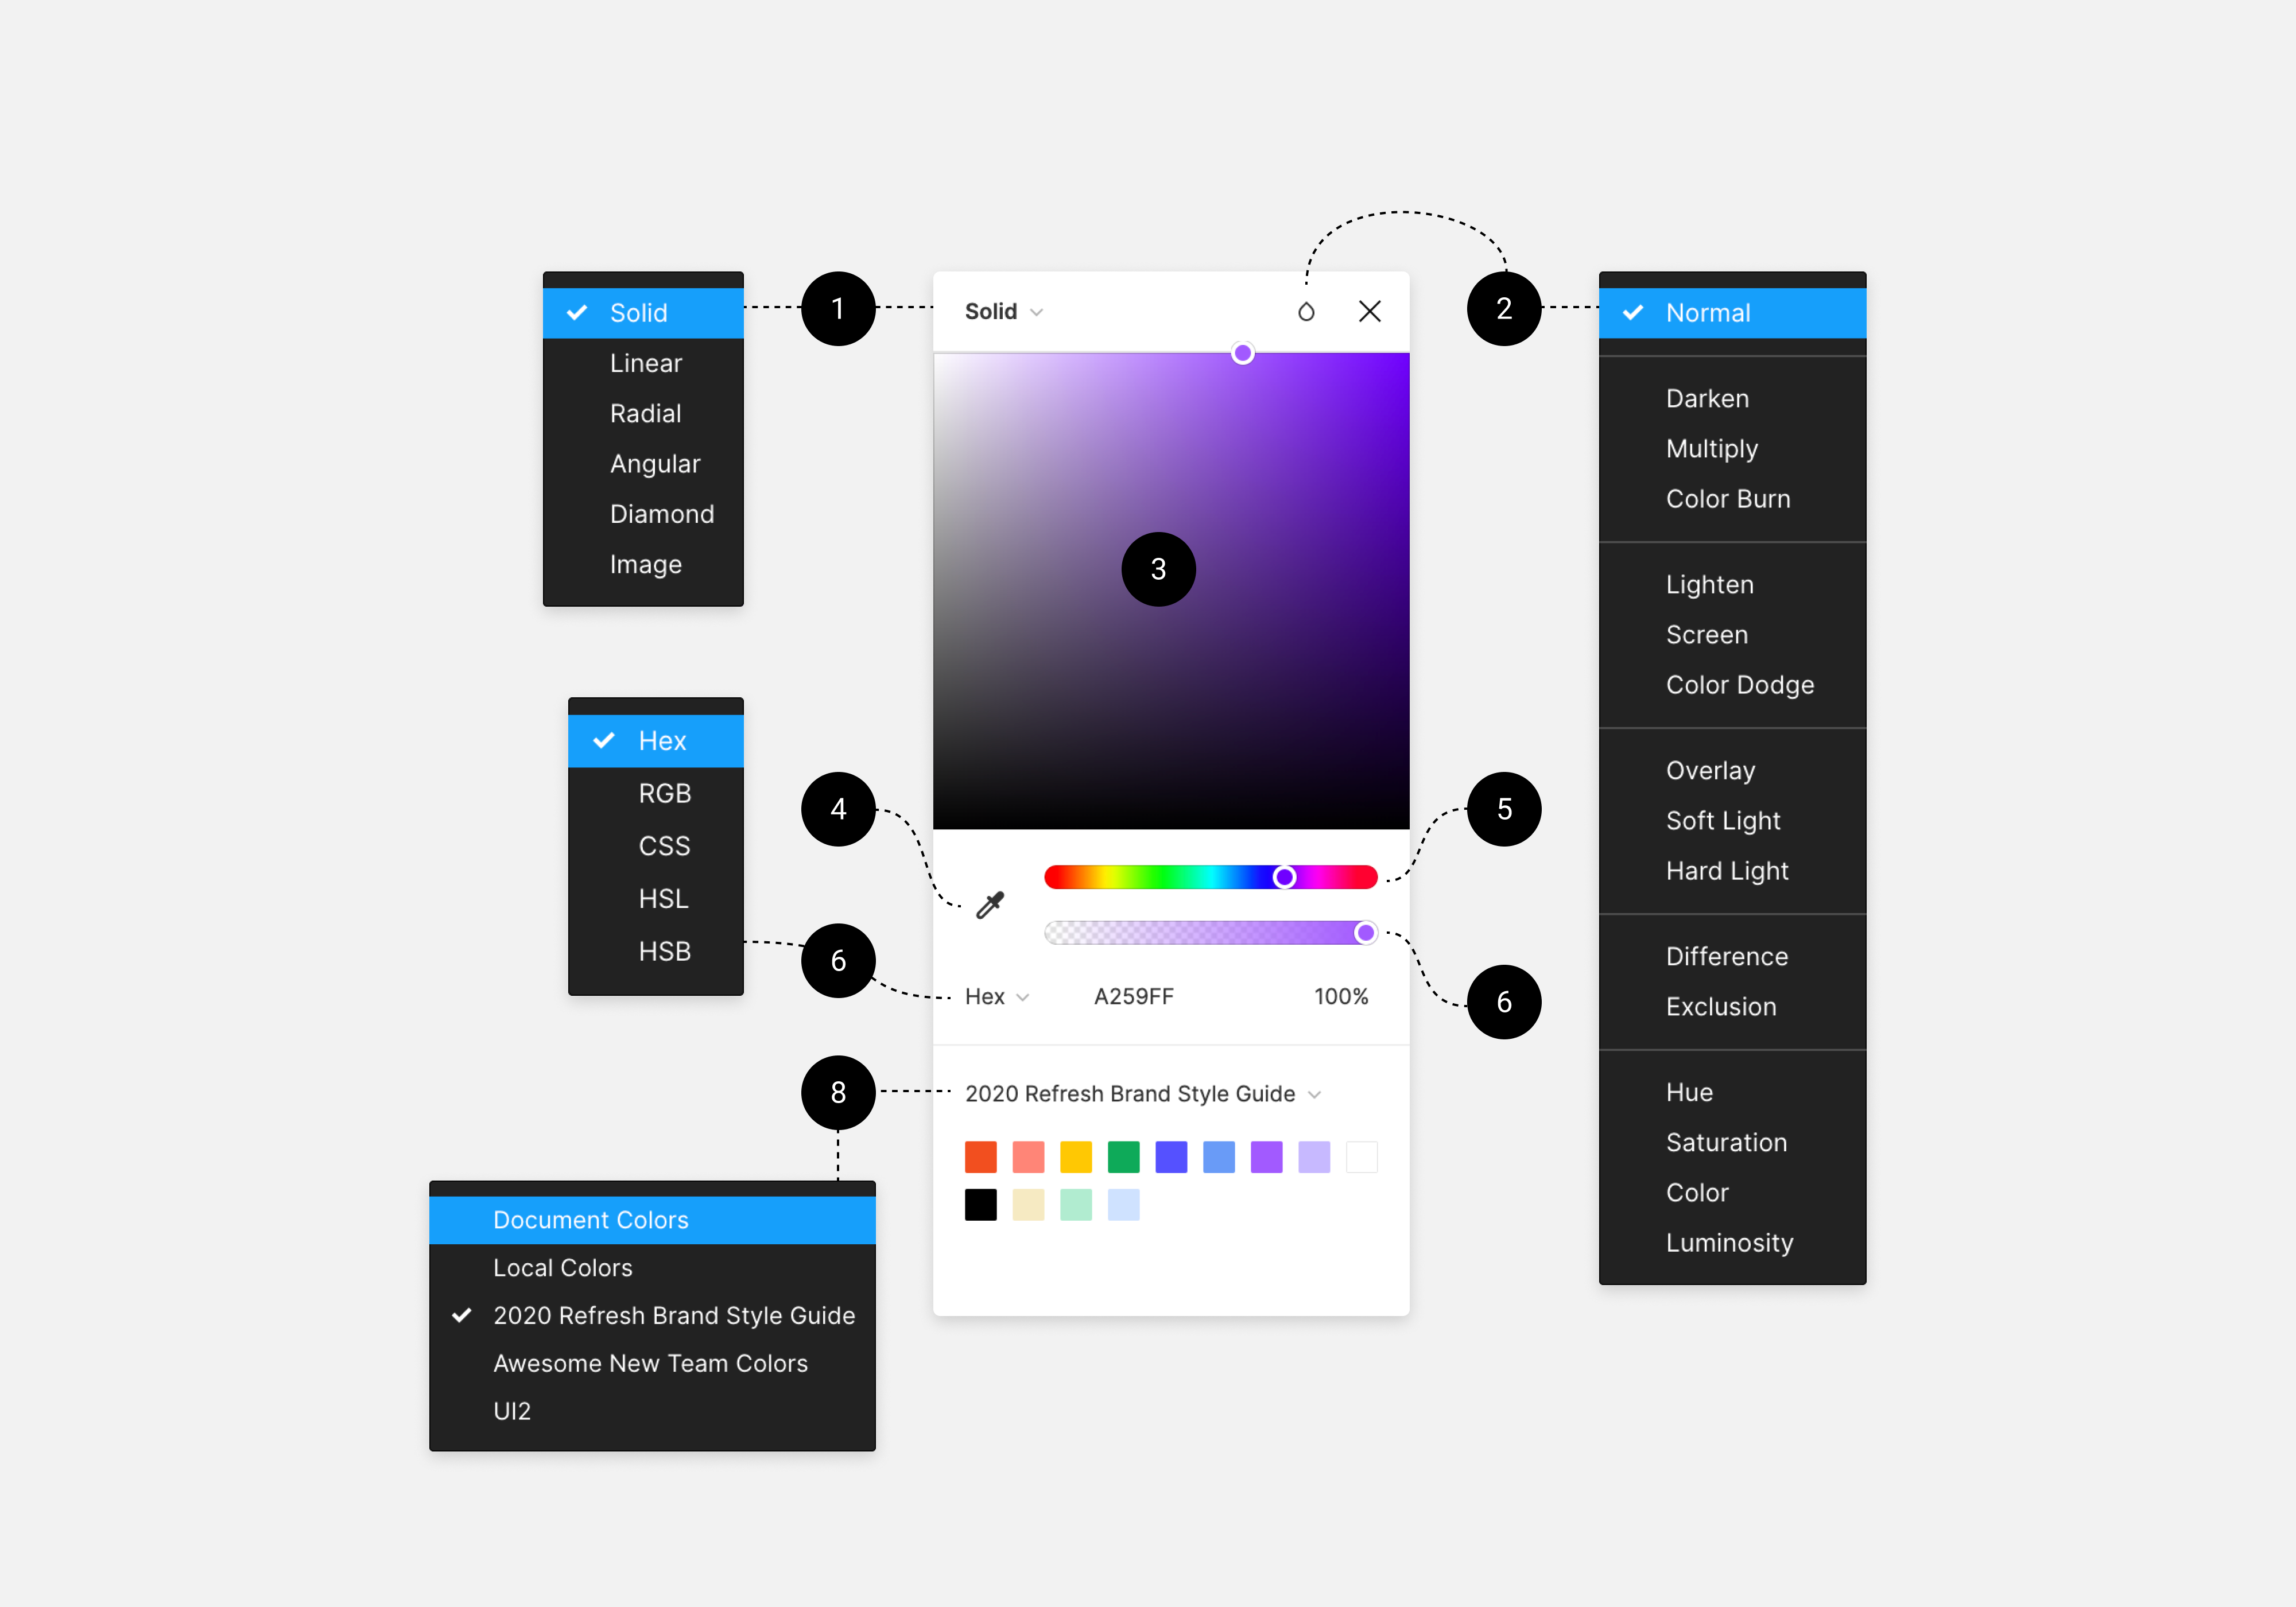 Annotated image showing each setting of the color picker